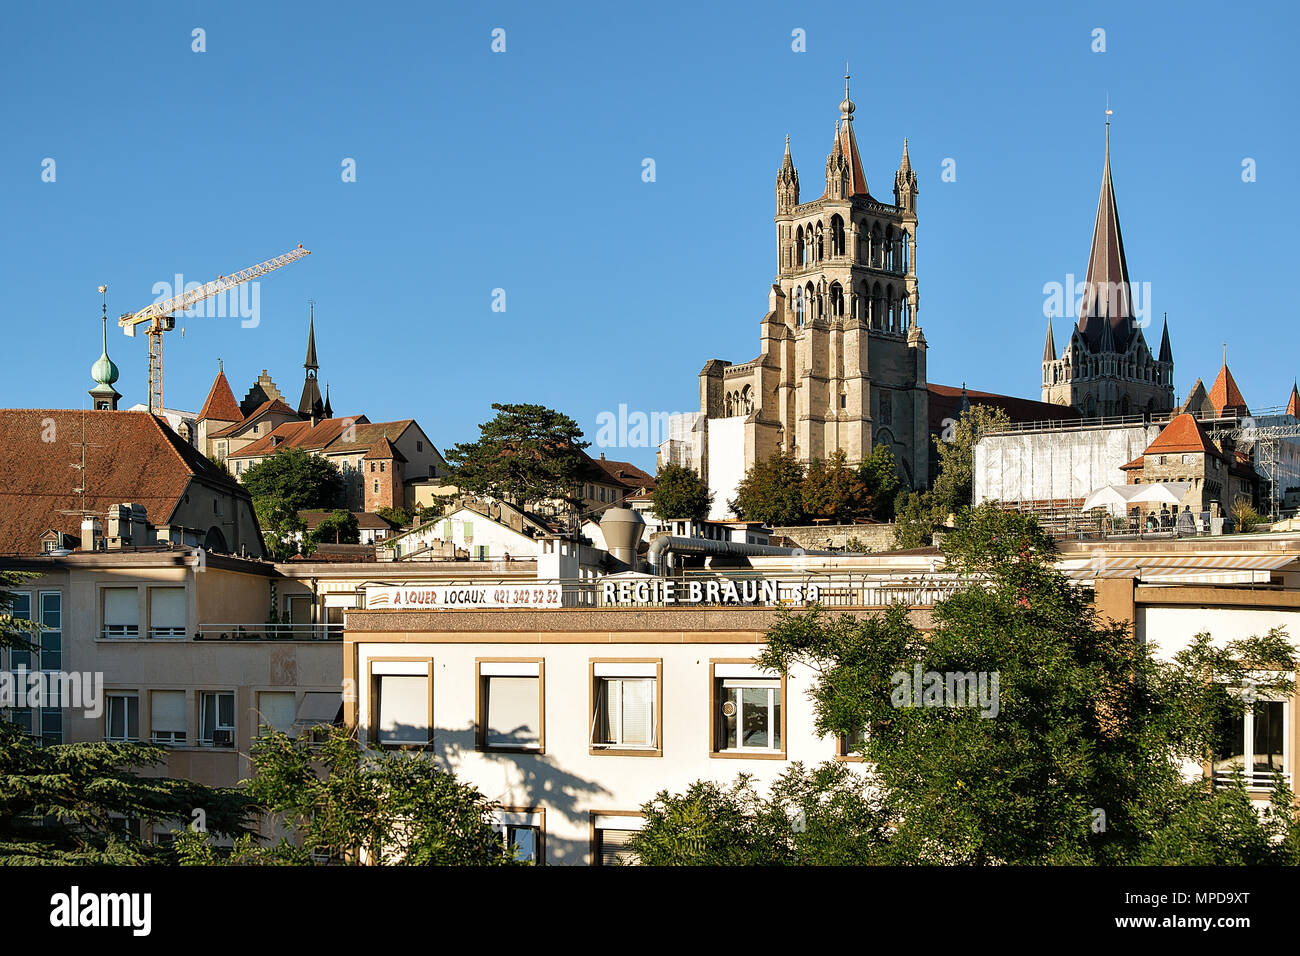 Lausanne, Switzerland - August 26, 2018: Cathedral of Notre Dame in Lausanne, in Switzerland. Seen from Le Flon district - Stock Image